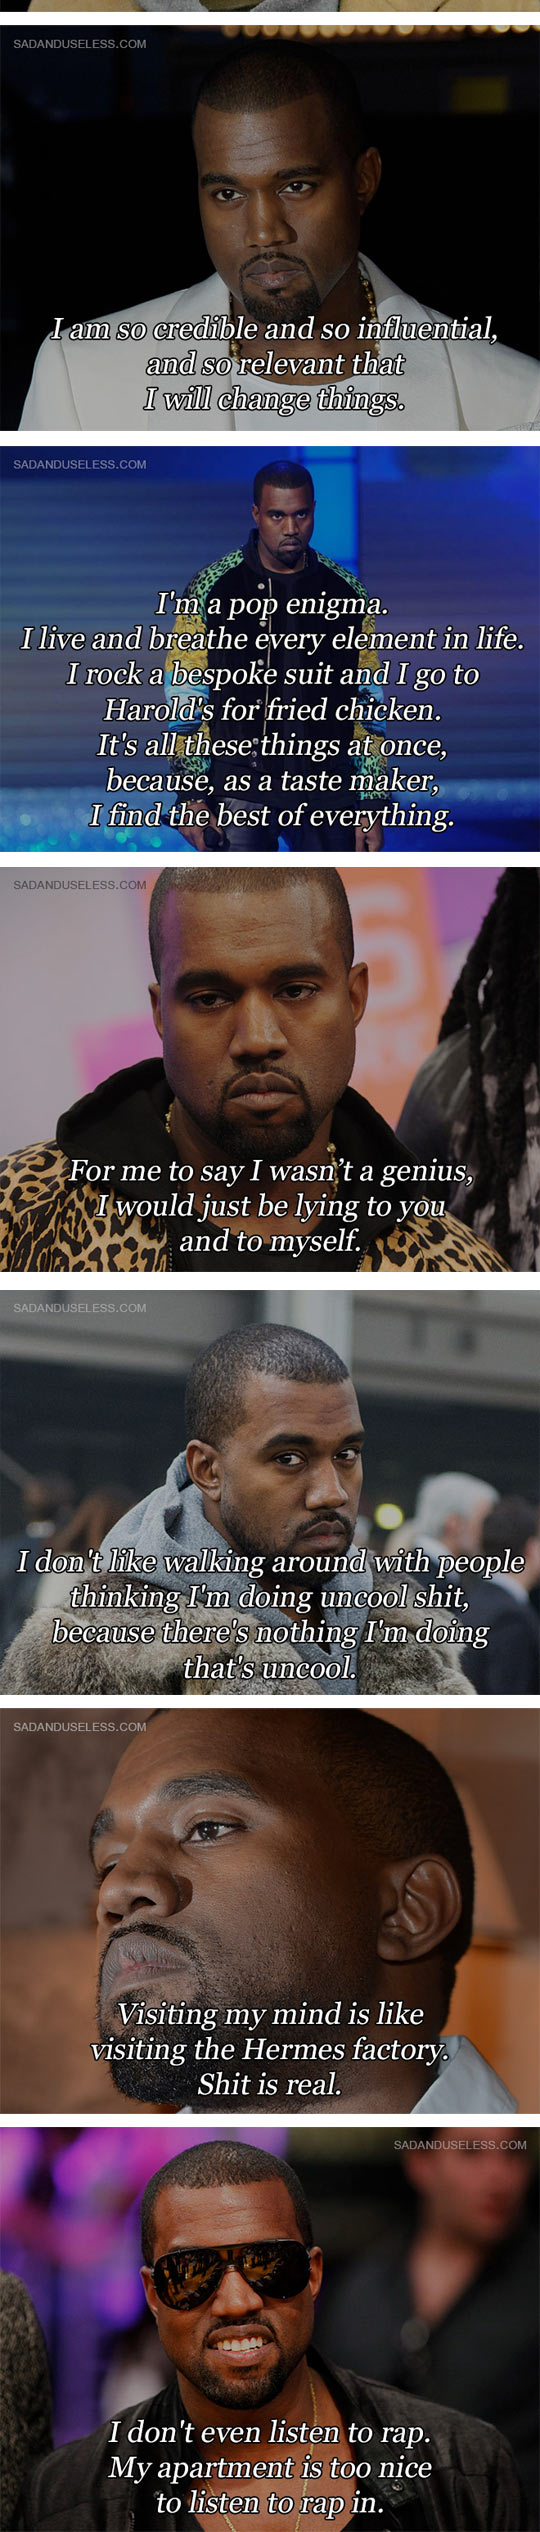 funny-Kanye-West-quotes-ridiculous-genius